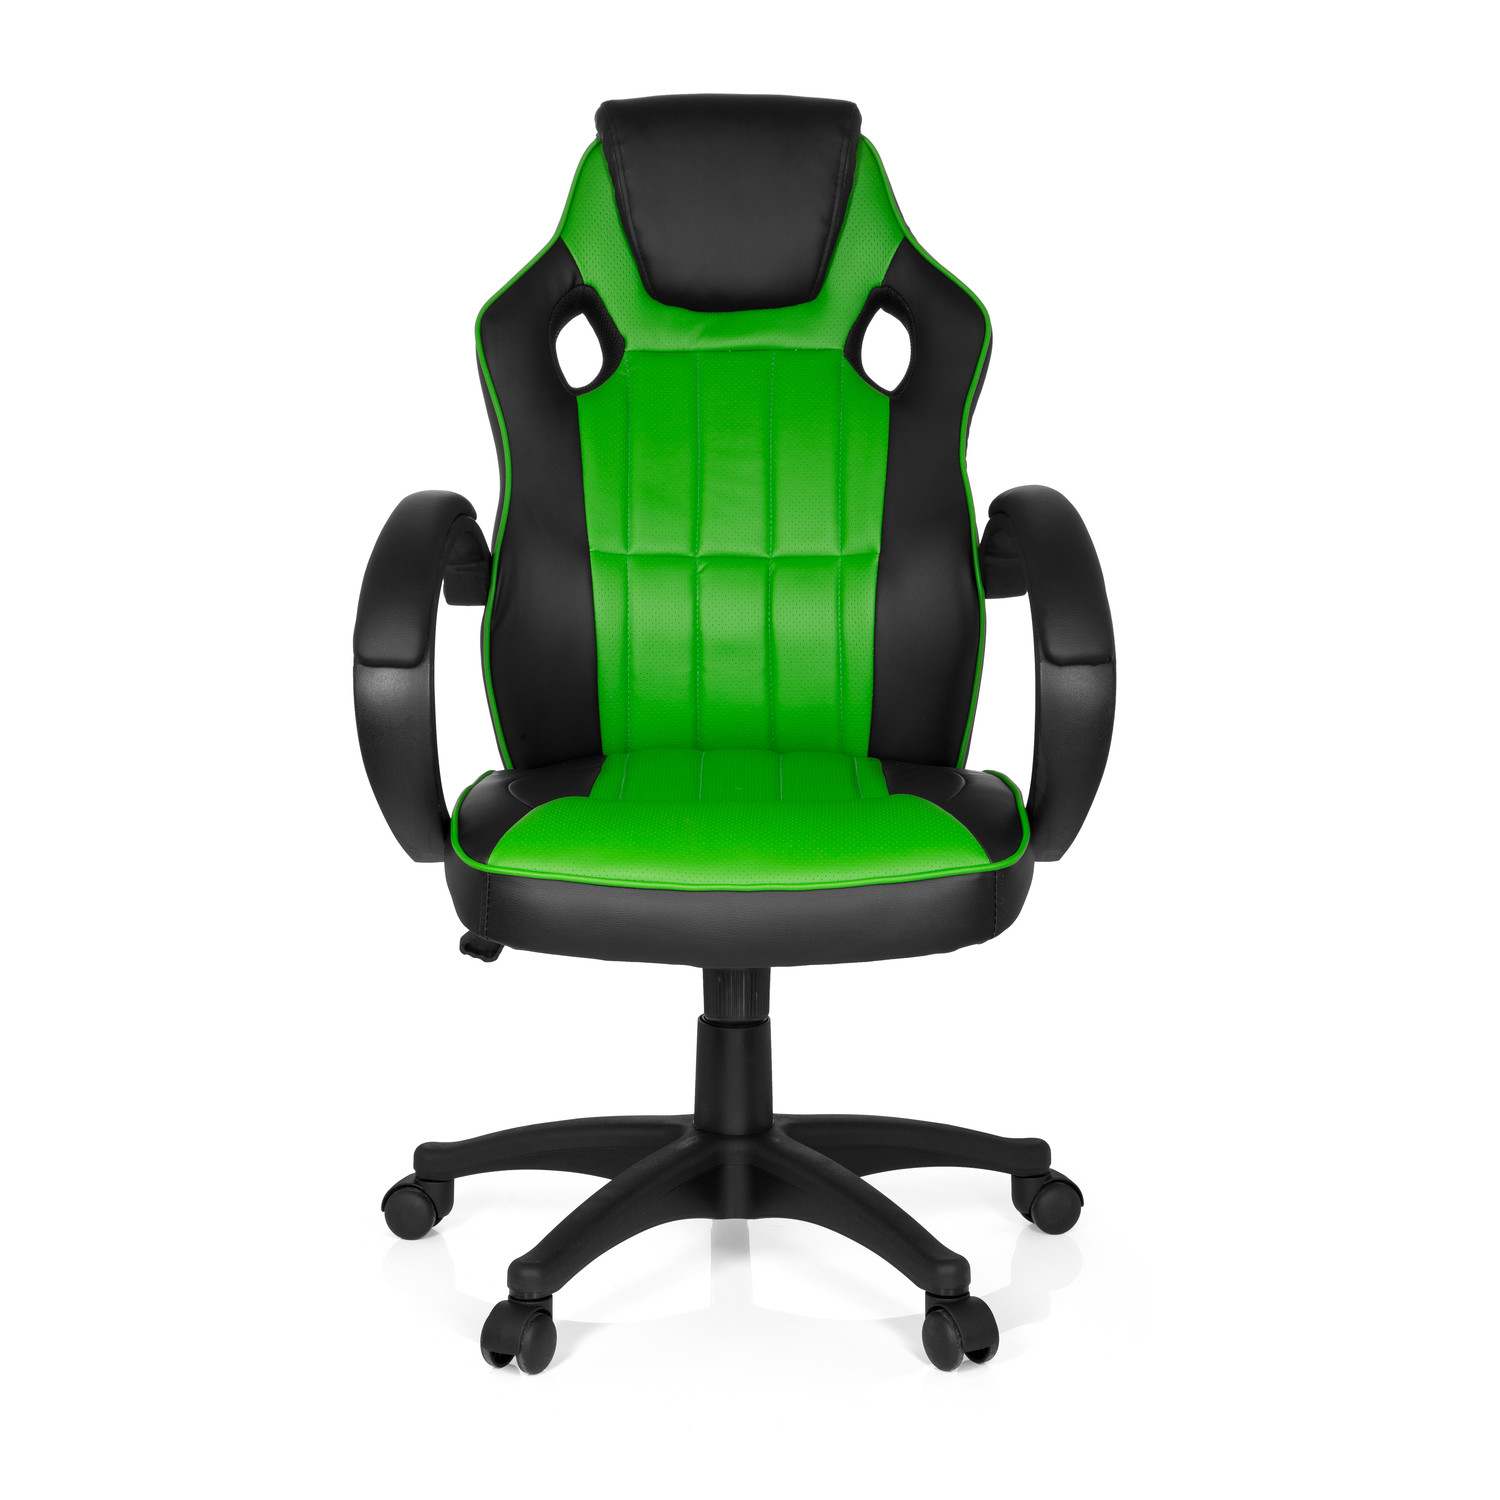 Silla gamer deportiva racer gaming pro exclusivo dise o for Silla gaming con altavoces